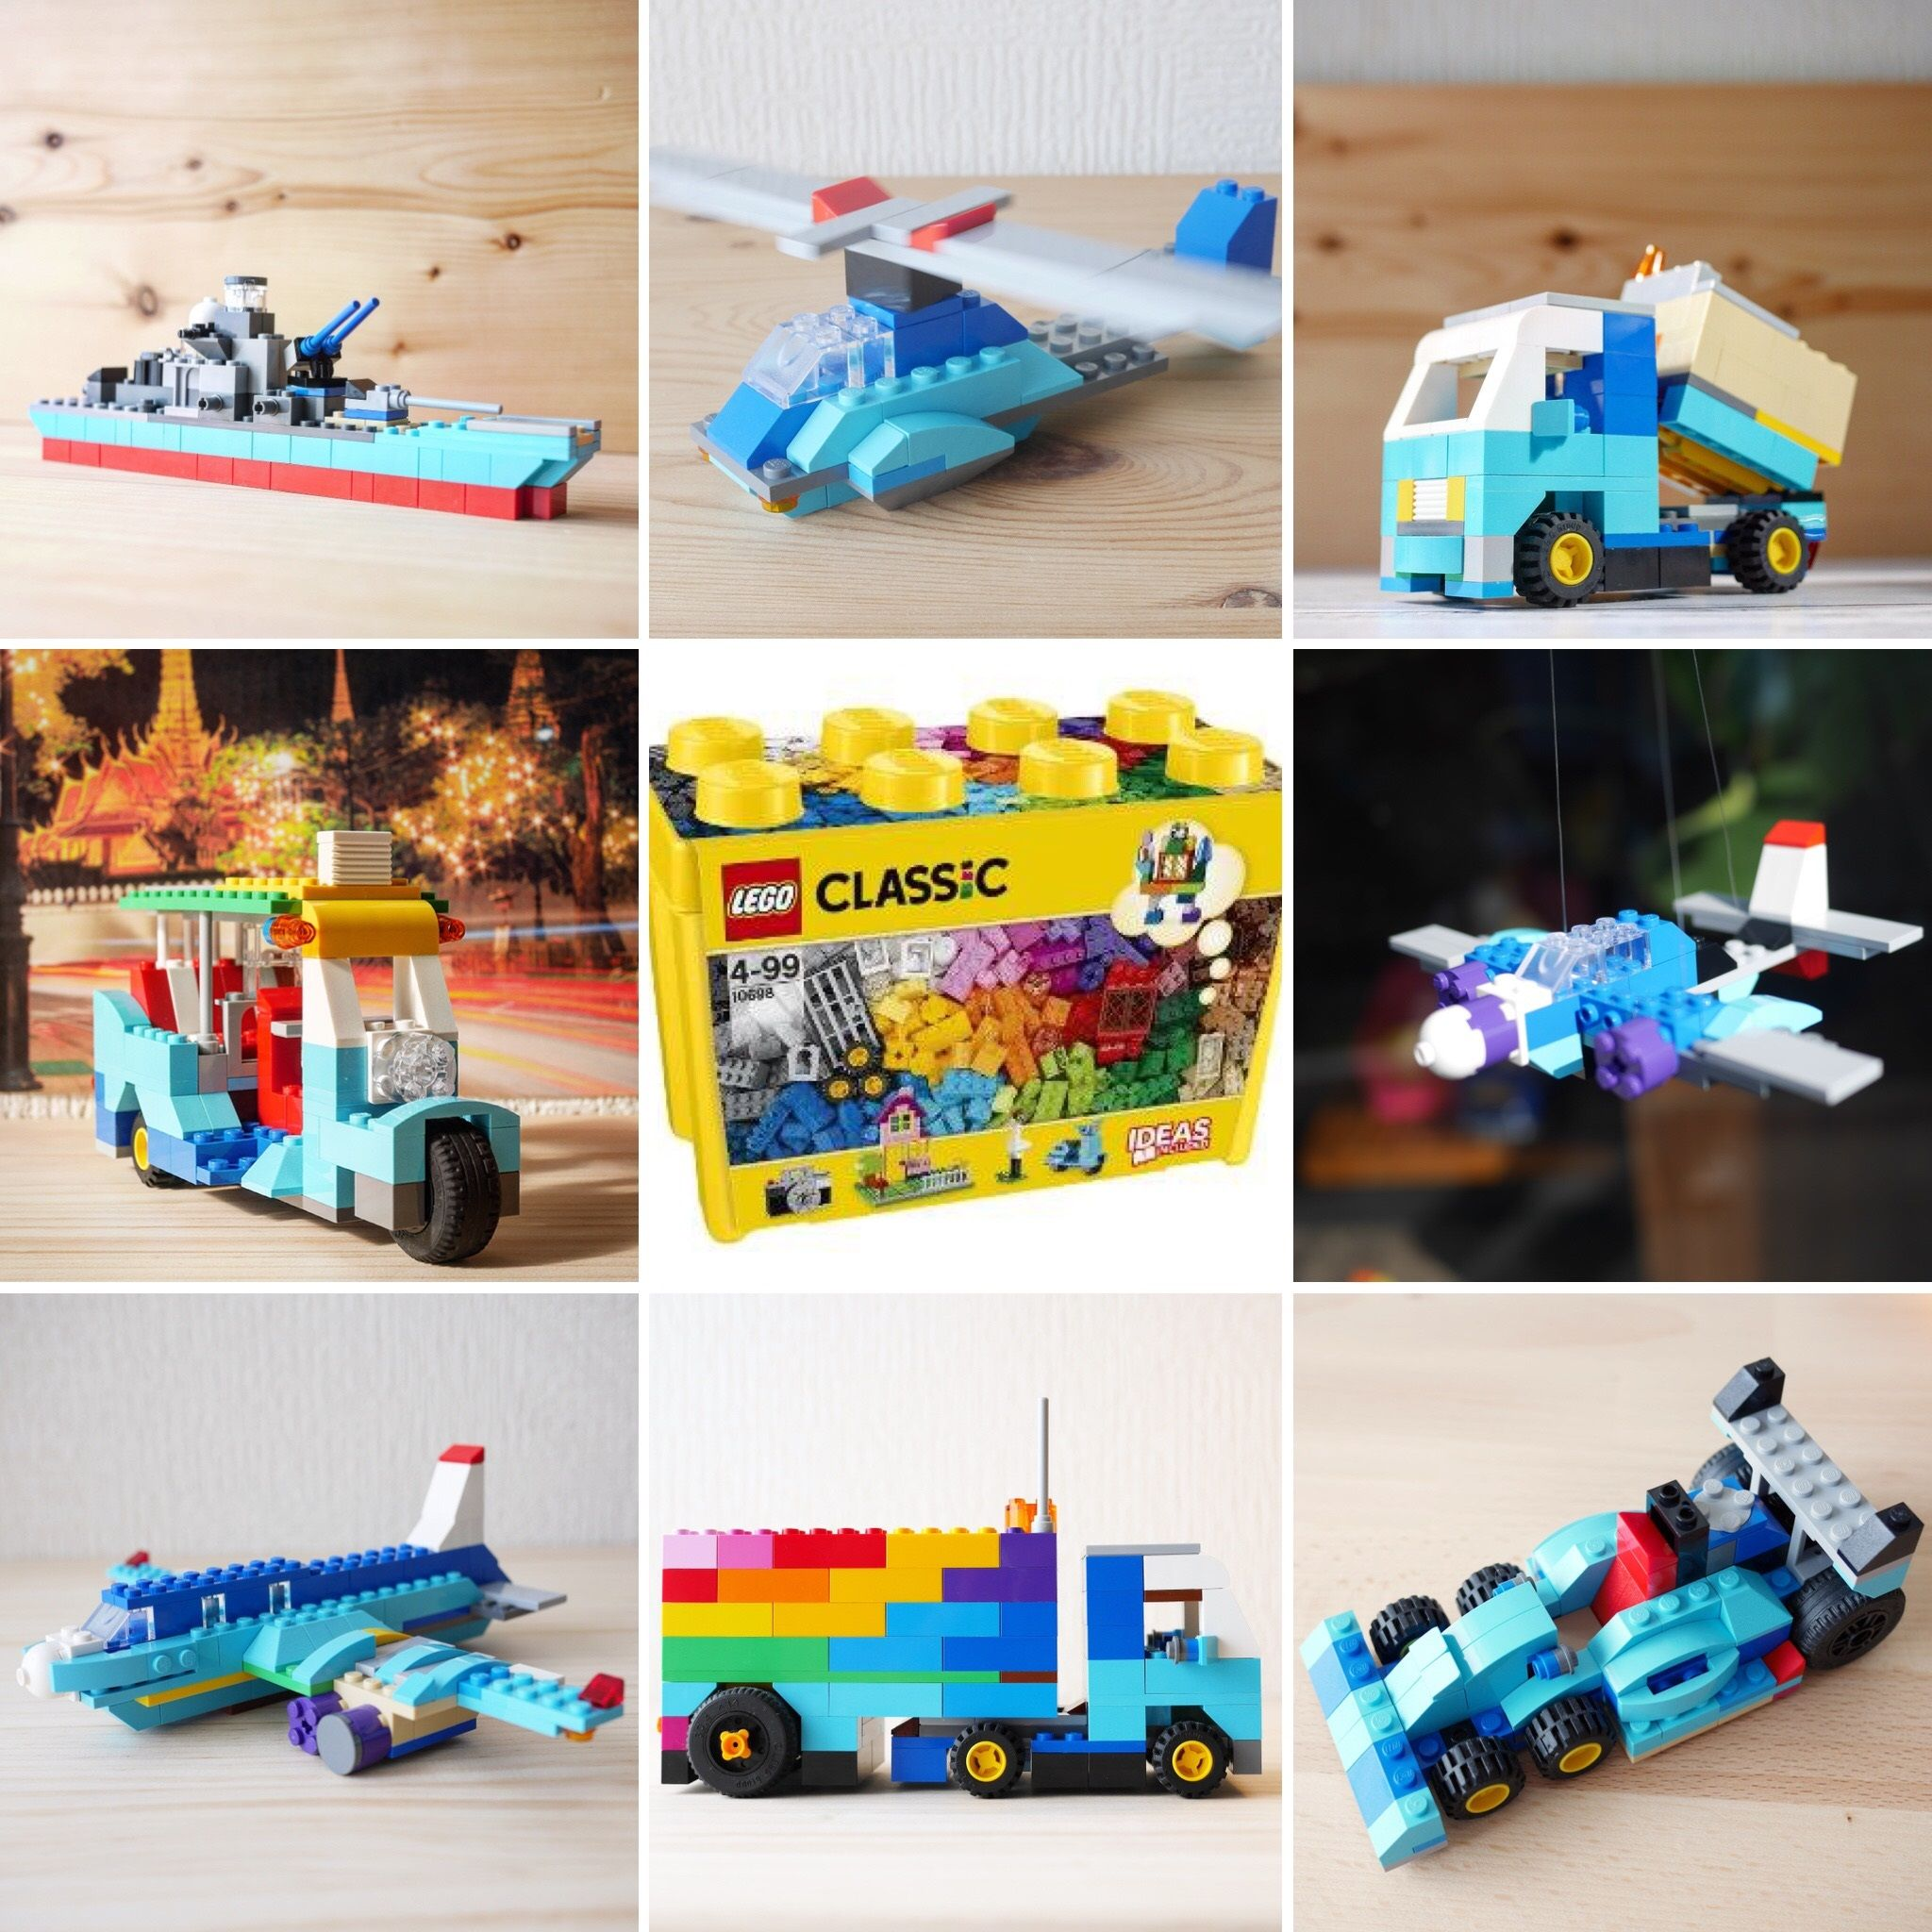 You Can Build Them Only Using Lego Classic 10698 And My Turtorial